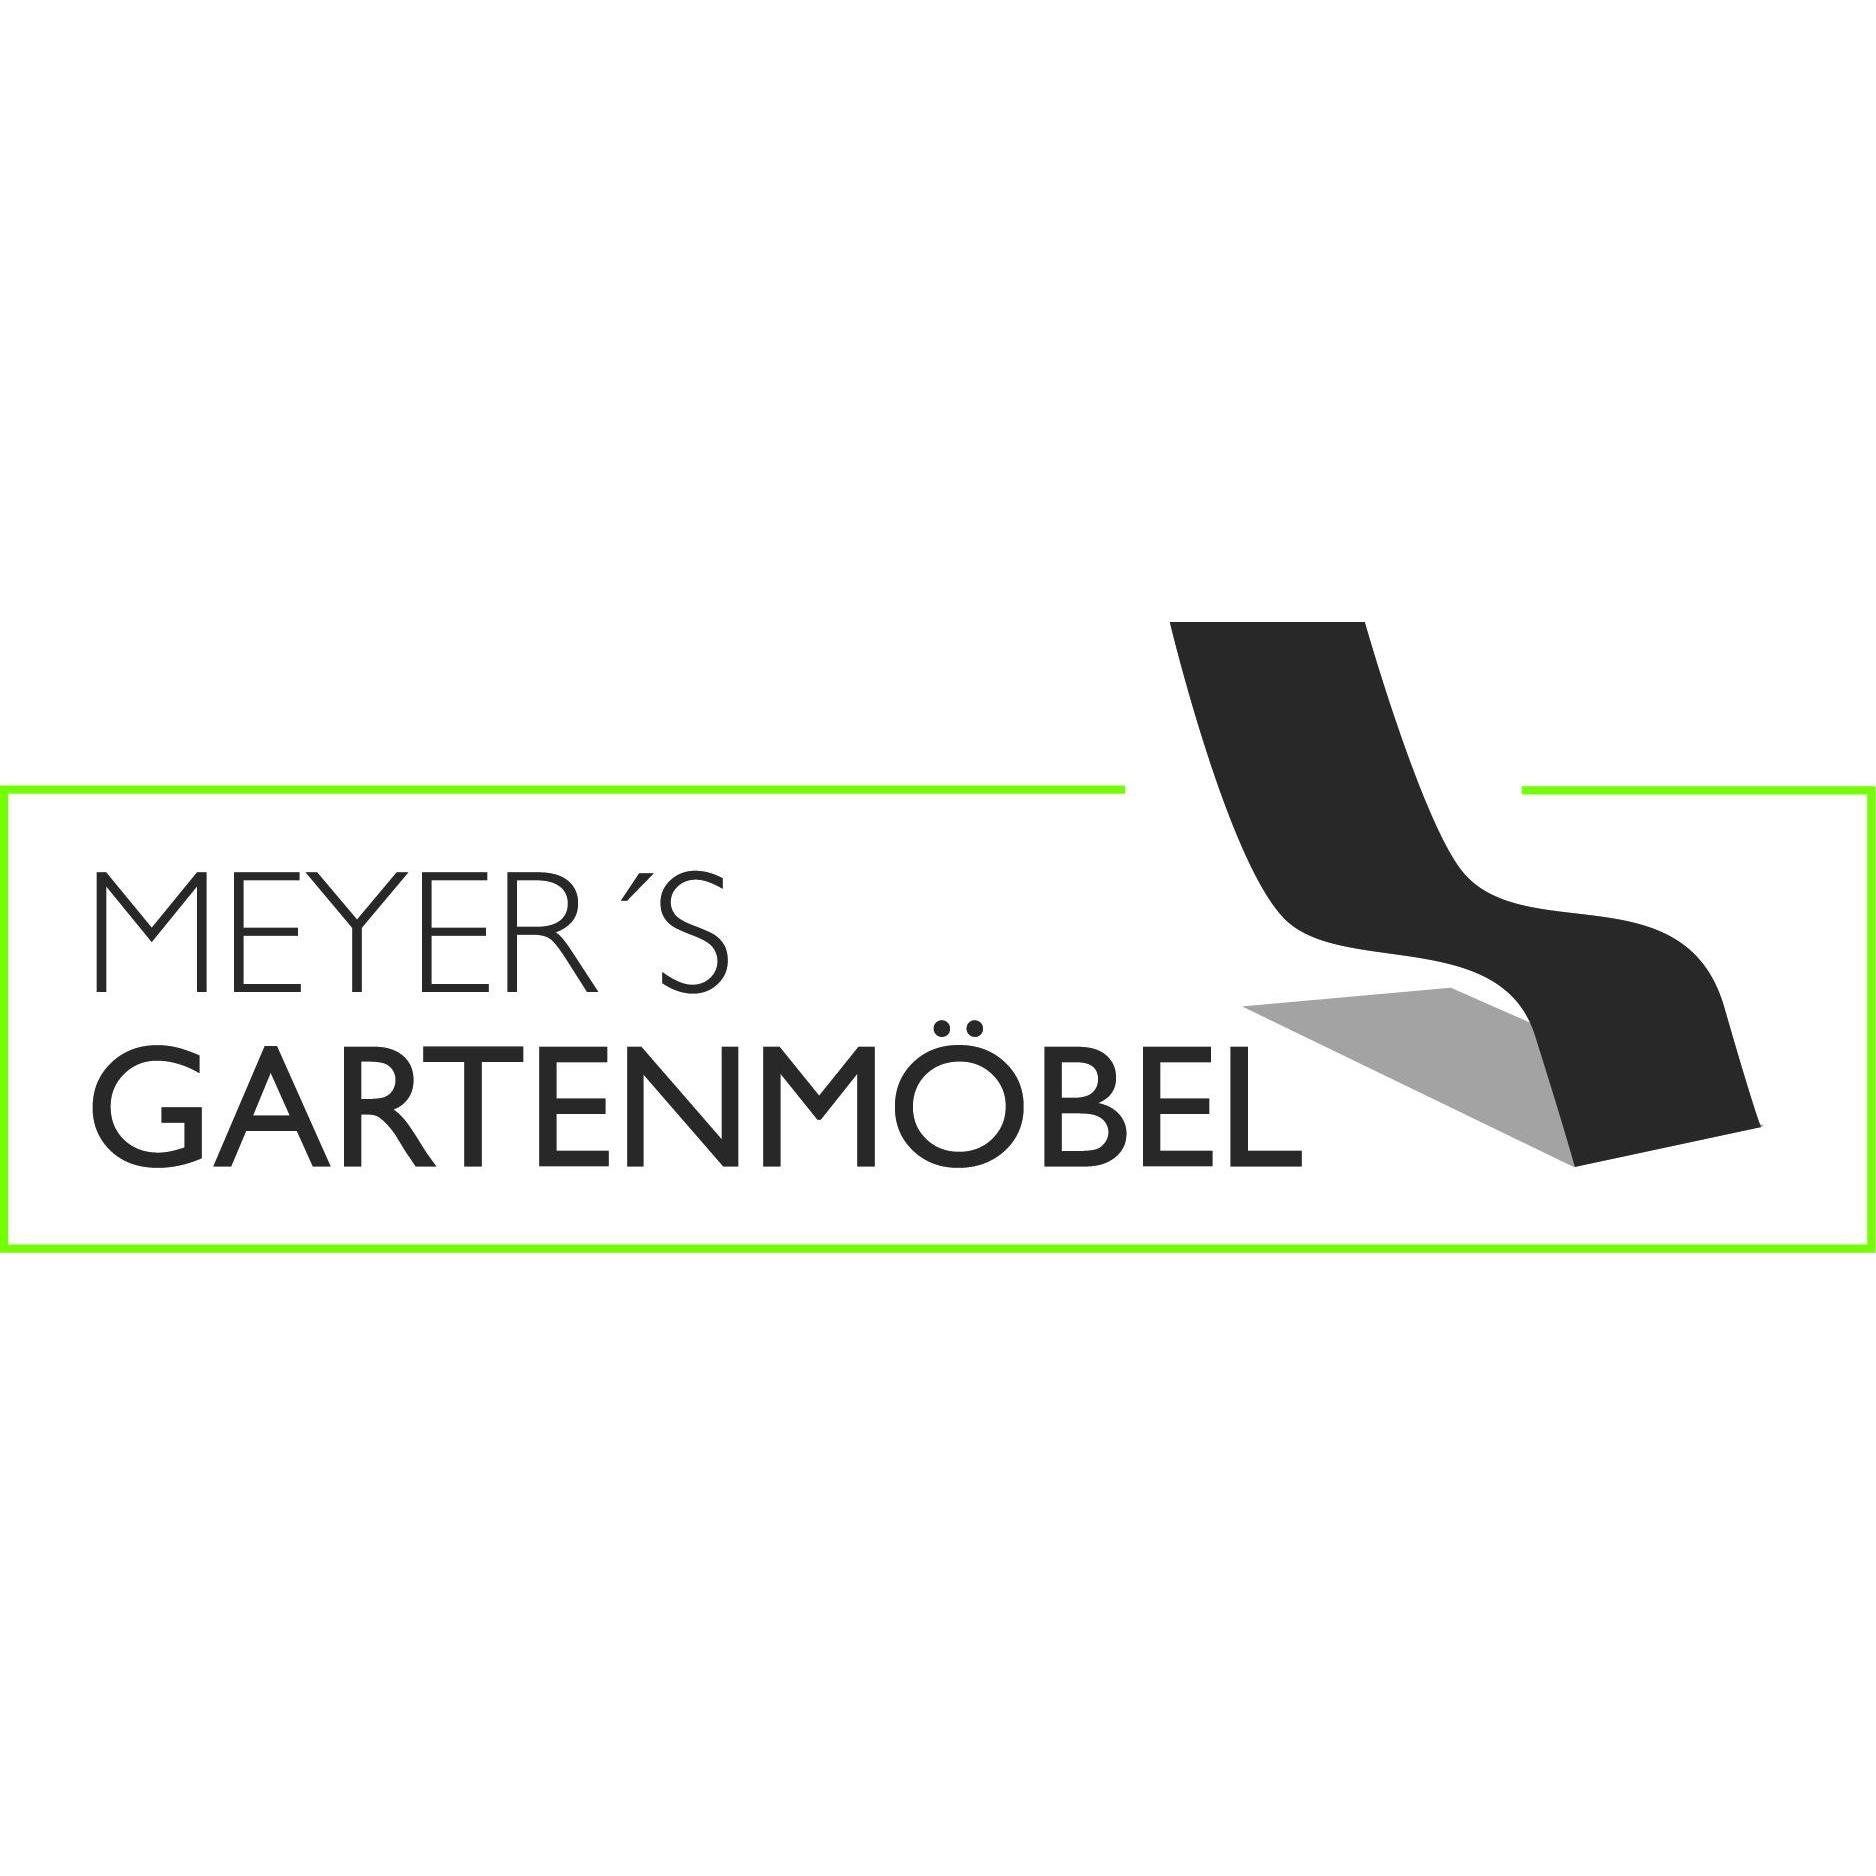 Gartenmöbel Center Meyer GmbH & Co.KG - Gartenzentren, Pflanzen ...